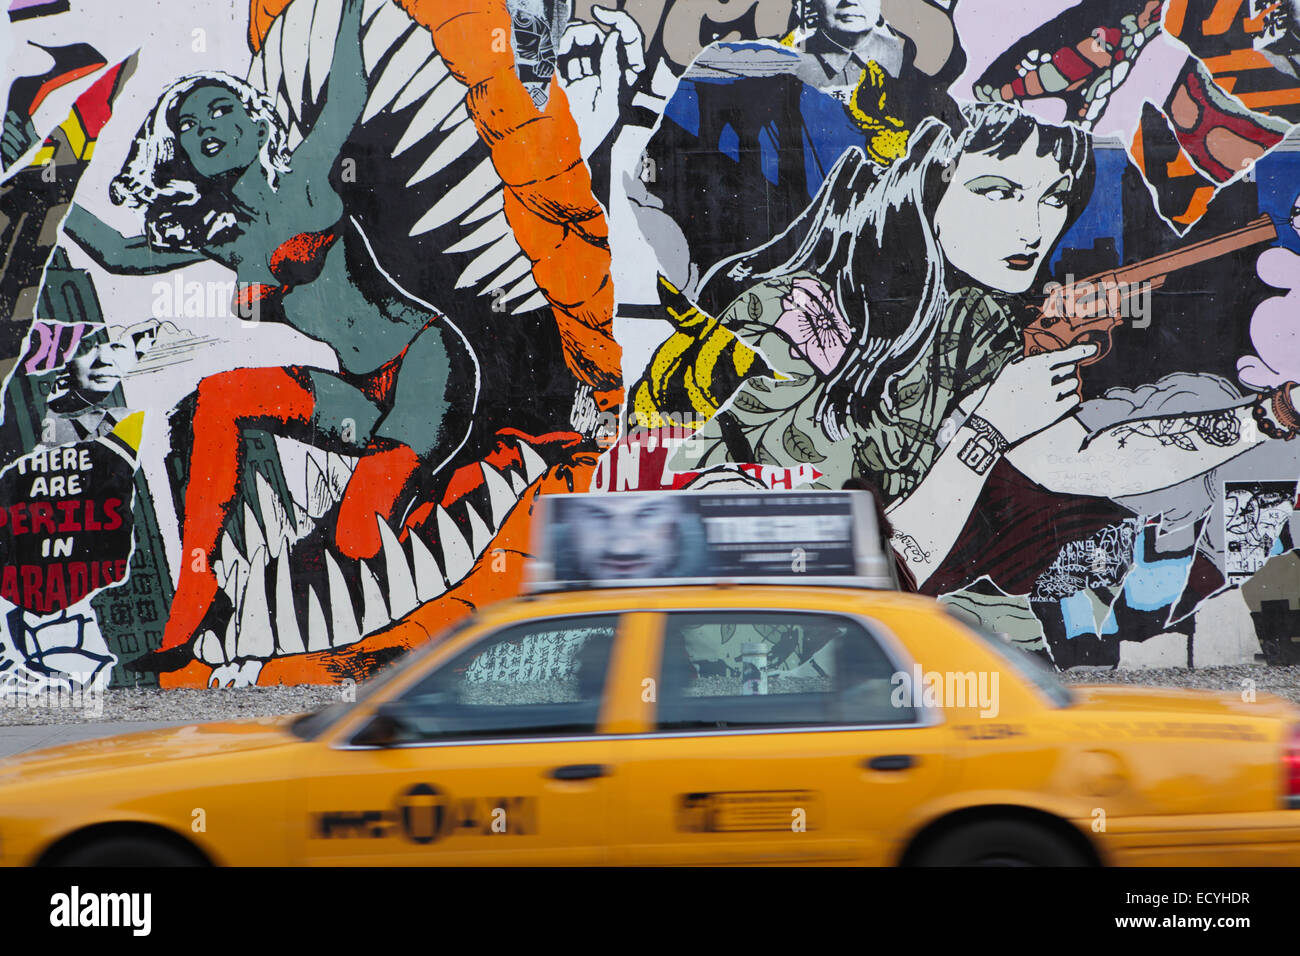 A yellow New York City taxi cab drives east past the Bowery Mural